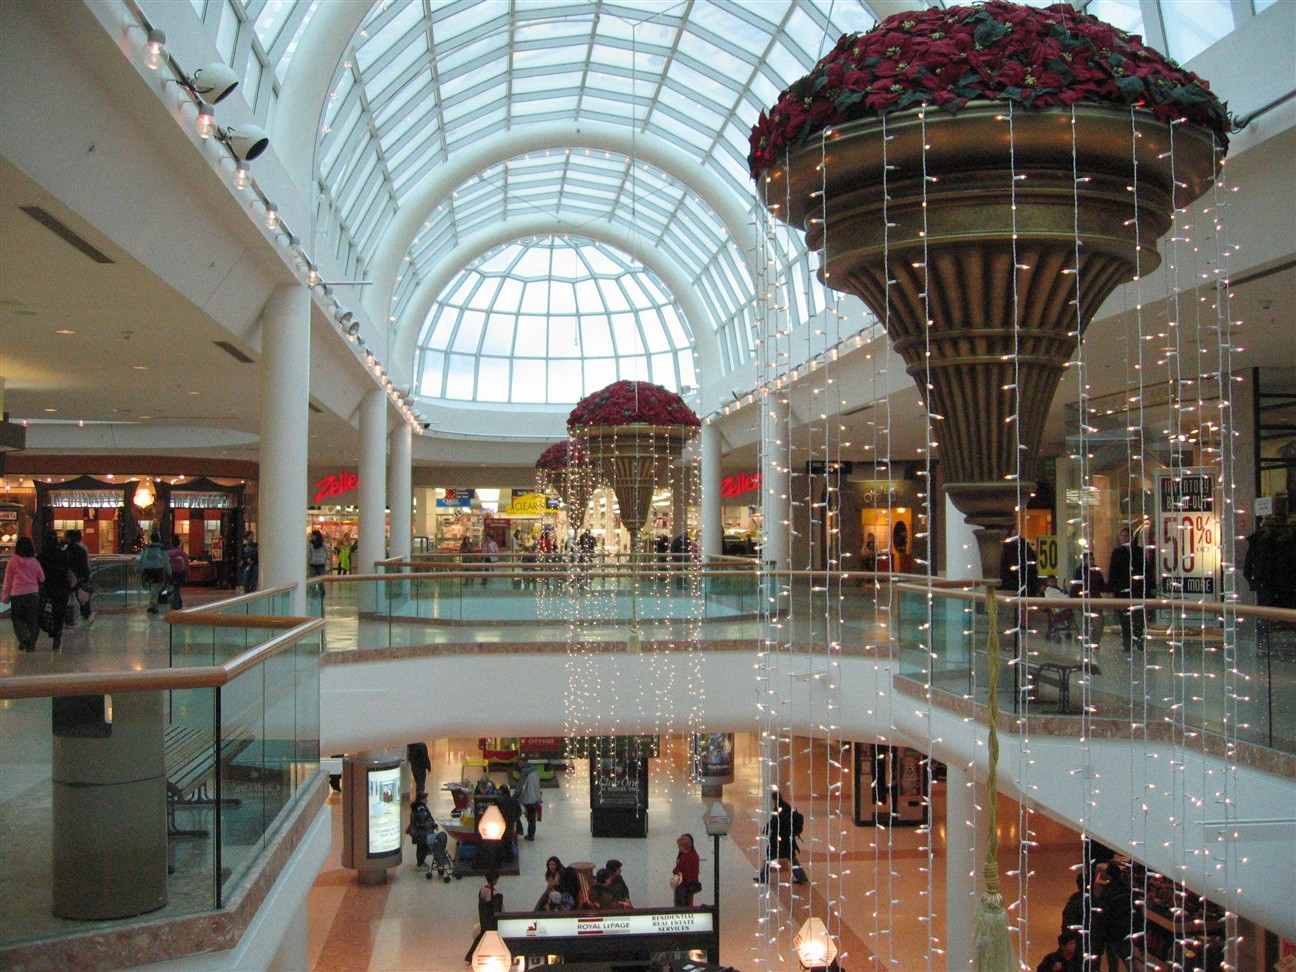 Square One Shopping Center in Mississauga, Ontario, Canada